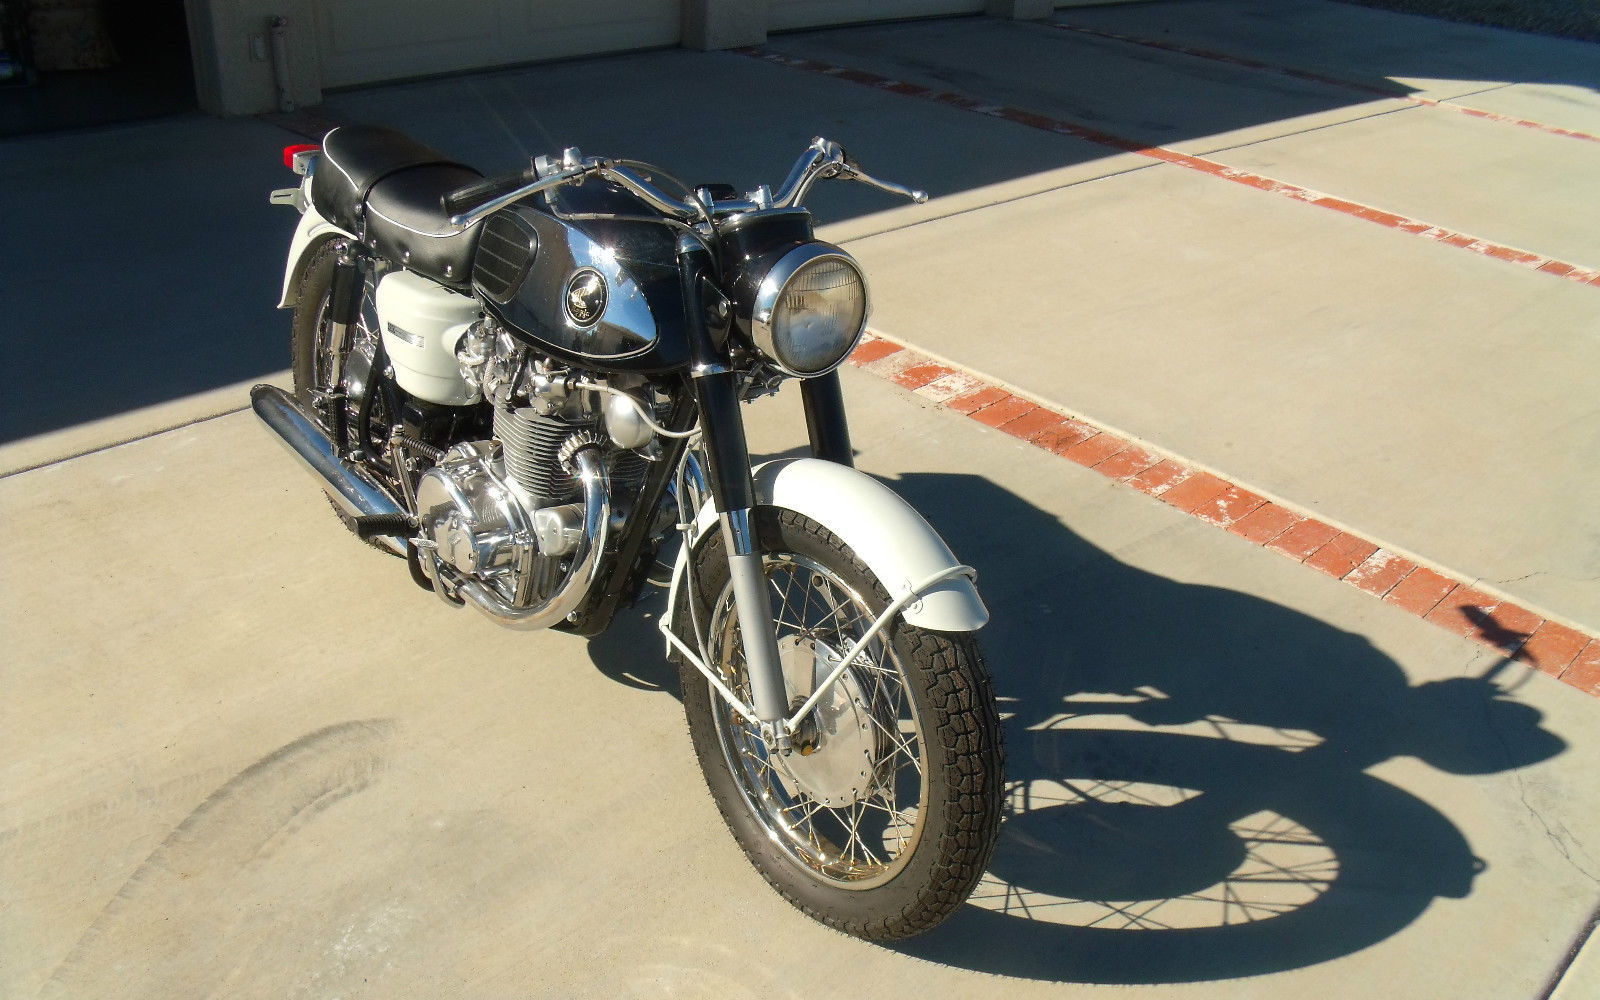 Honda CB450 Black Bomber - 1967 - Handlebars, Headlight and Levers.